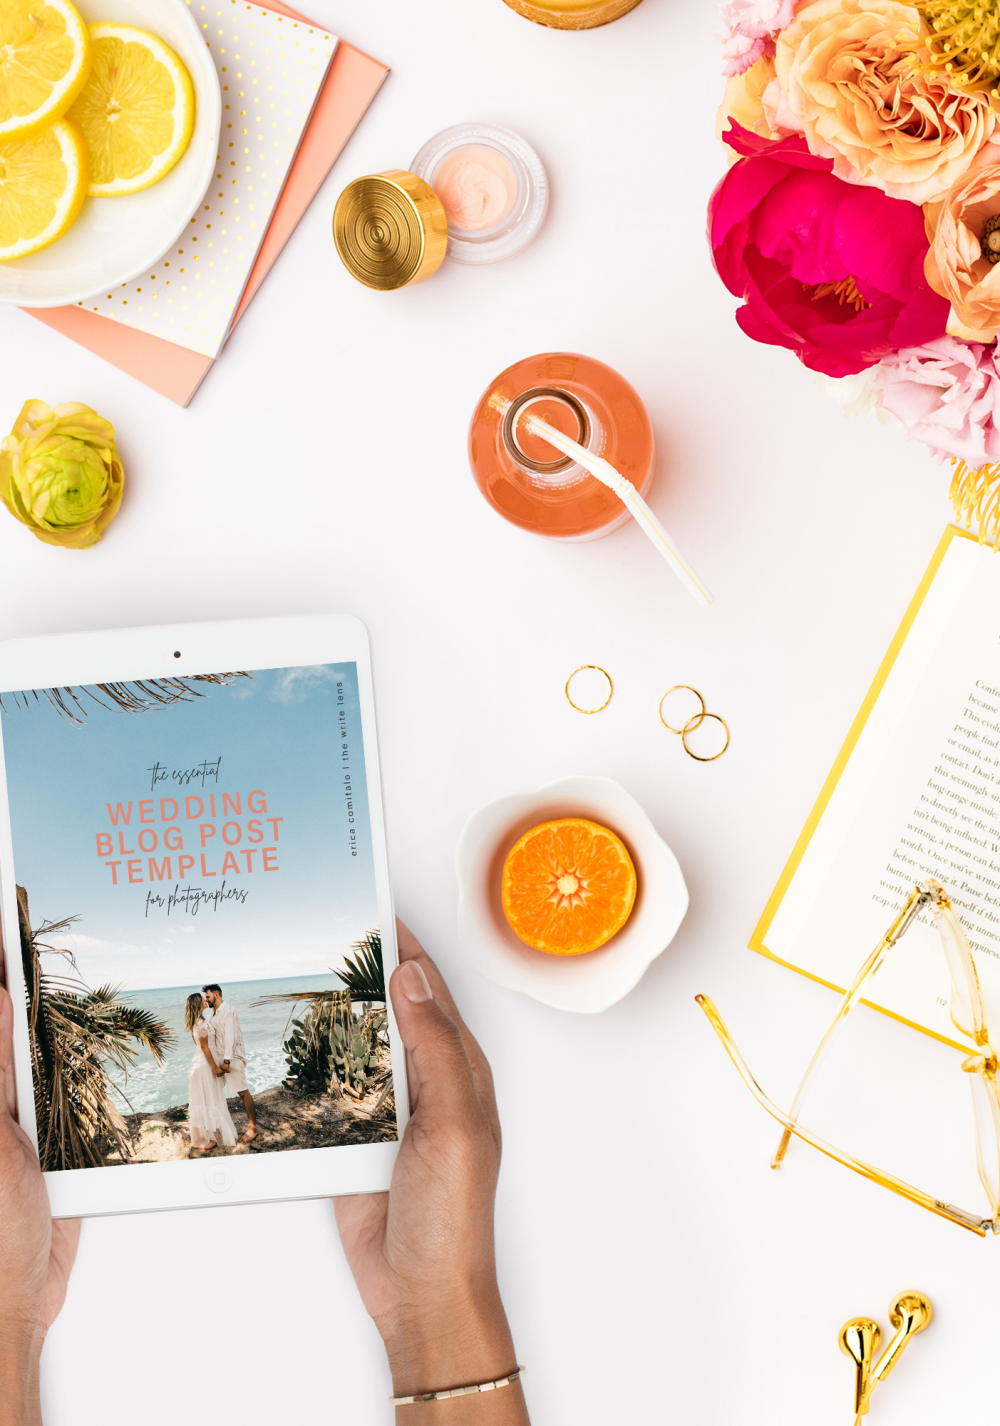 introducing the wedding blog post template for photographers being used